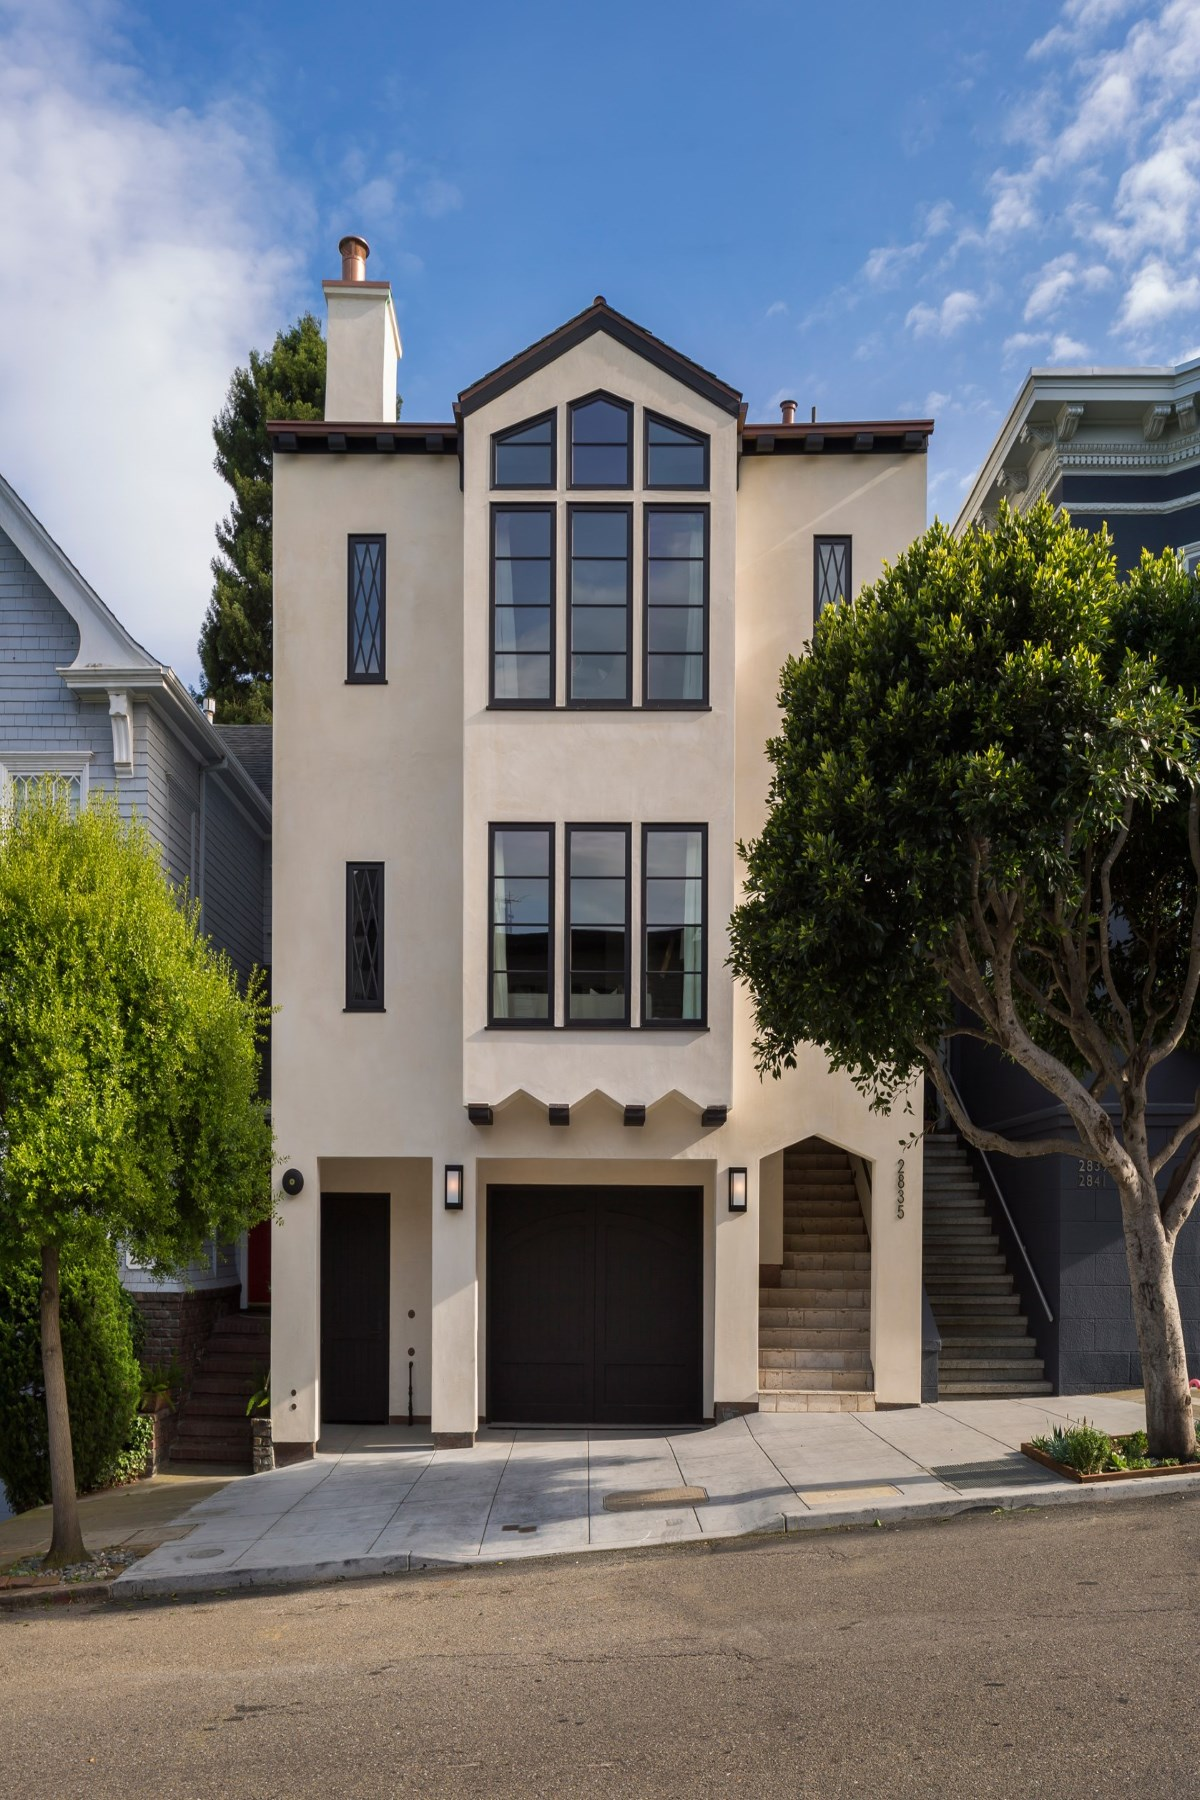 Single Family Home for Sale at A Renaissance of Style and Substance 2833-2835 Union St Cow Hollow, San Francisco, California, 94123 United States